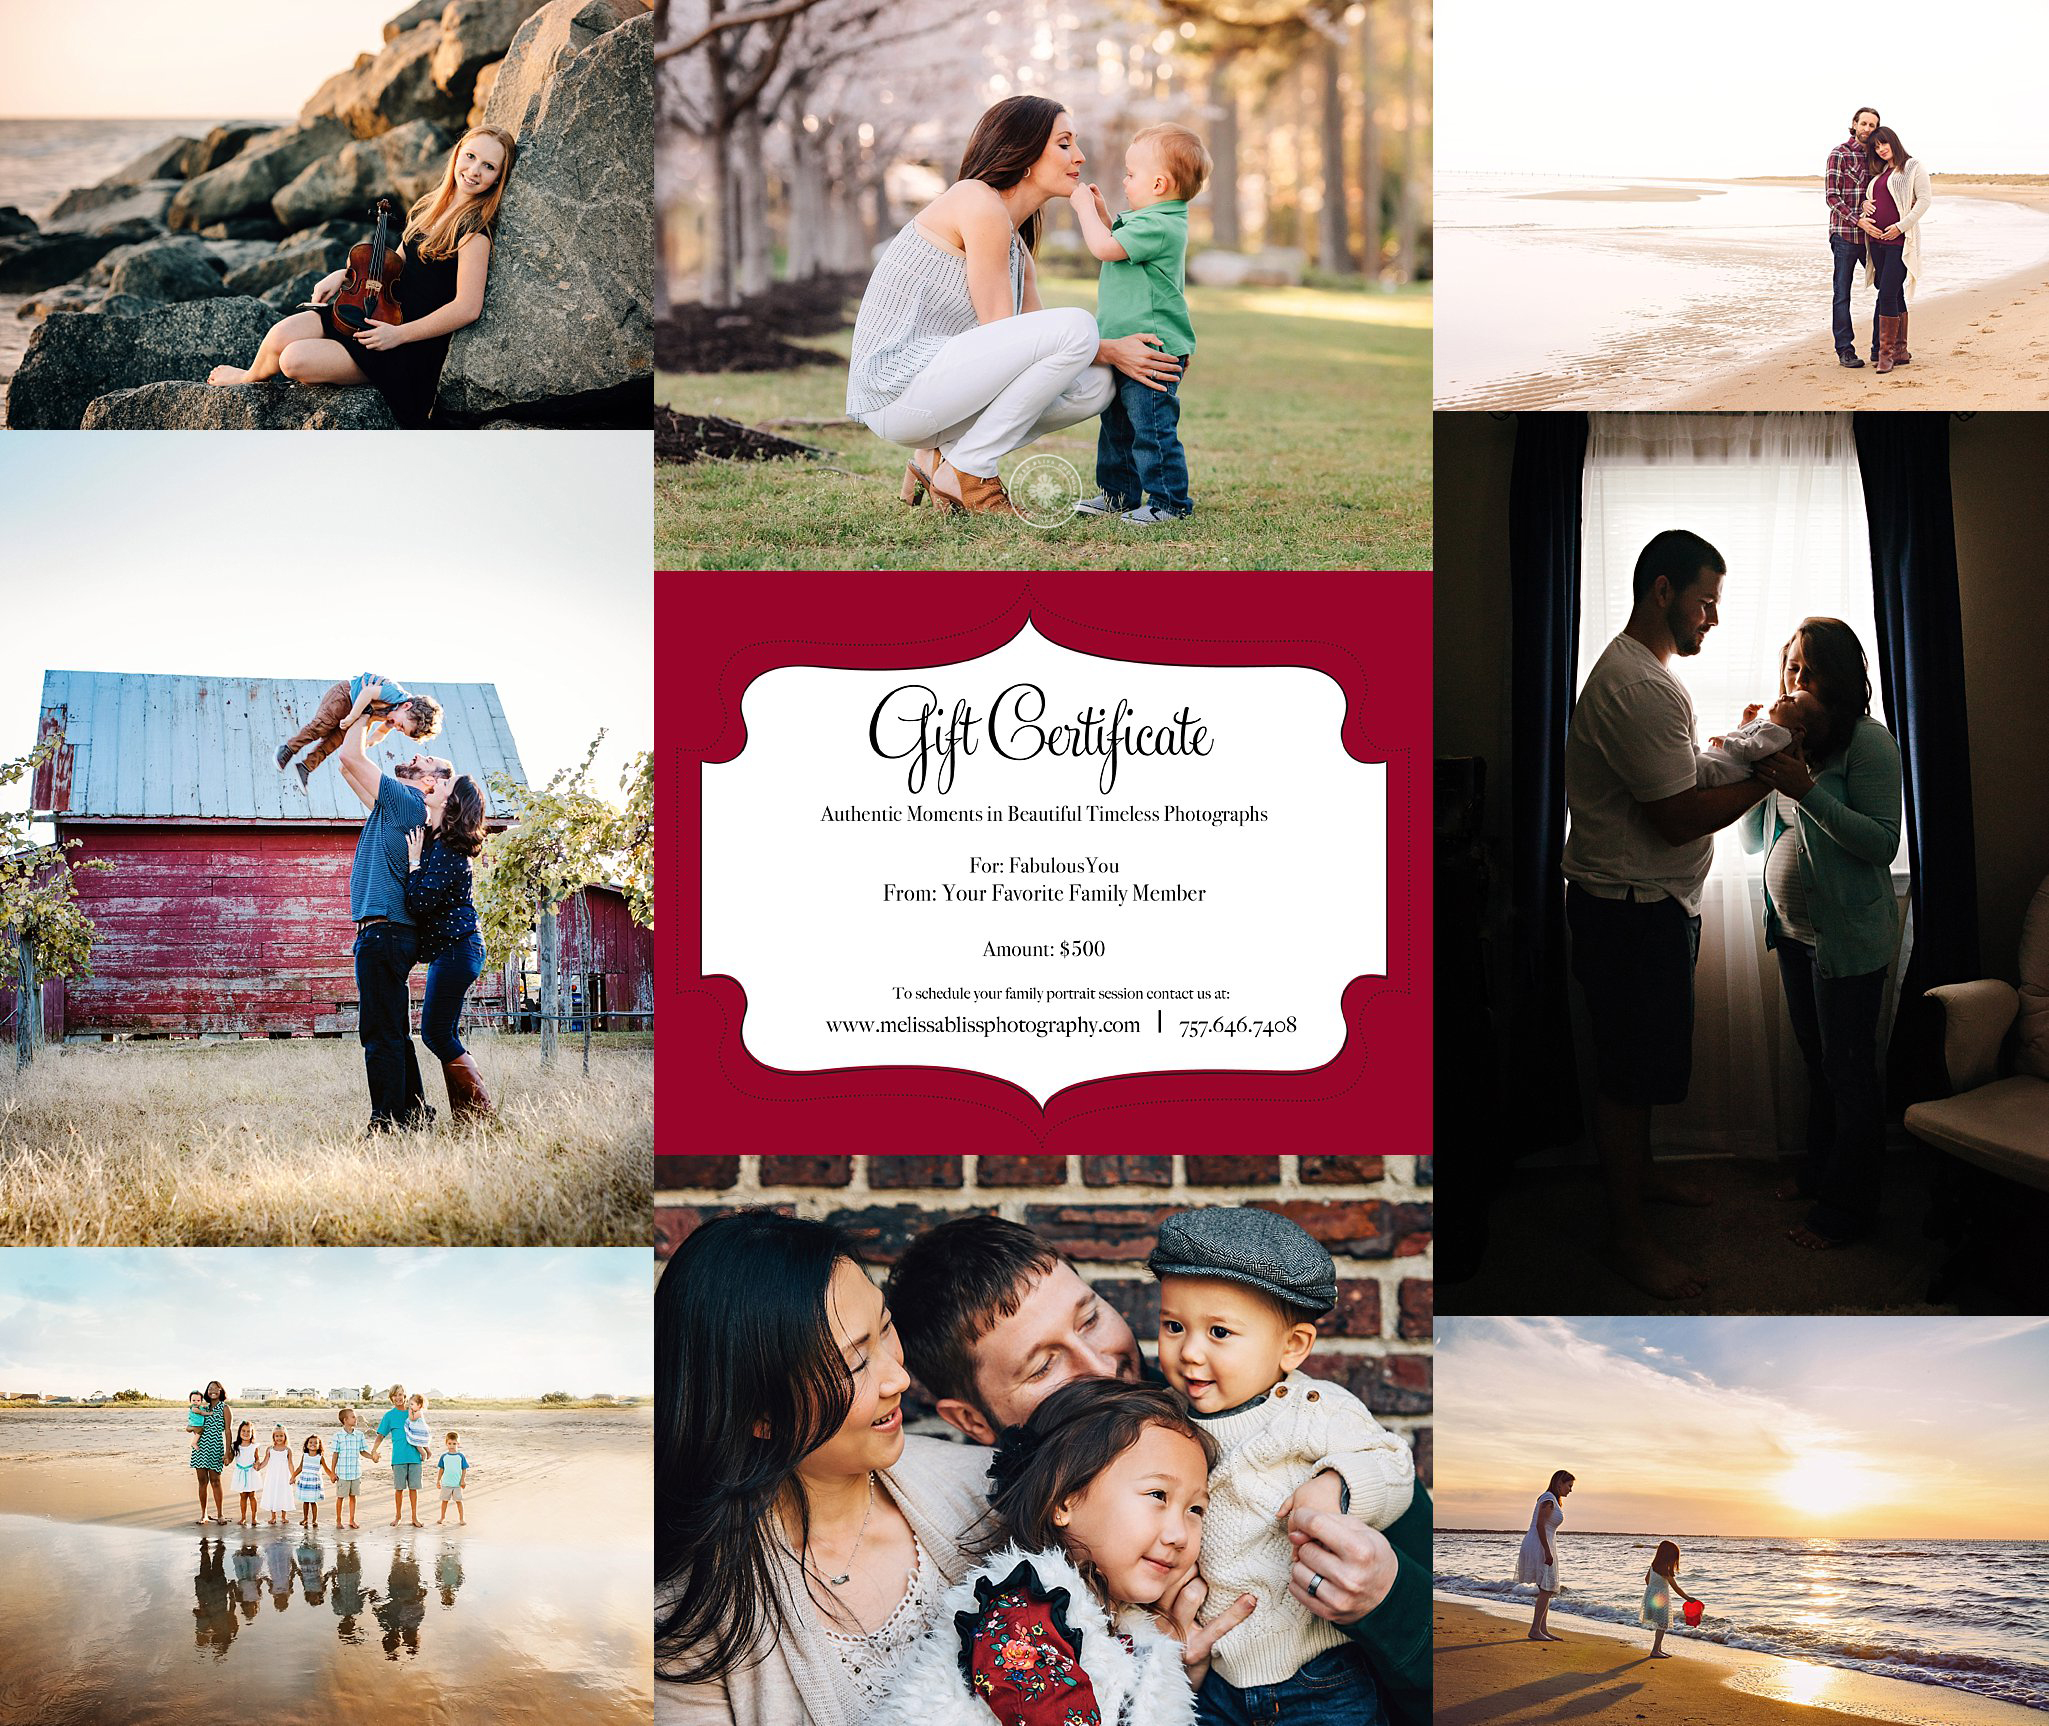 melissa-bliss-photography-black-friday-sale-virginia-beach-norfolk-chesapeake-williamsburg-sandbridge-photographers-family-engagement-newborn-senior-photography-hampton-roads-gift-certificate-sale-BOGO